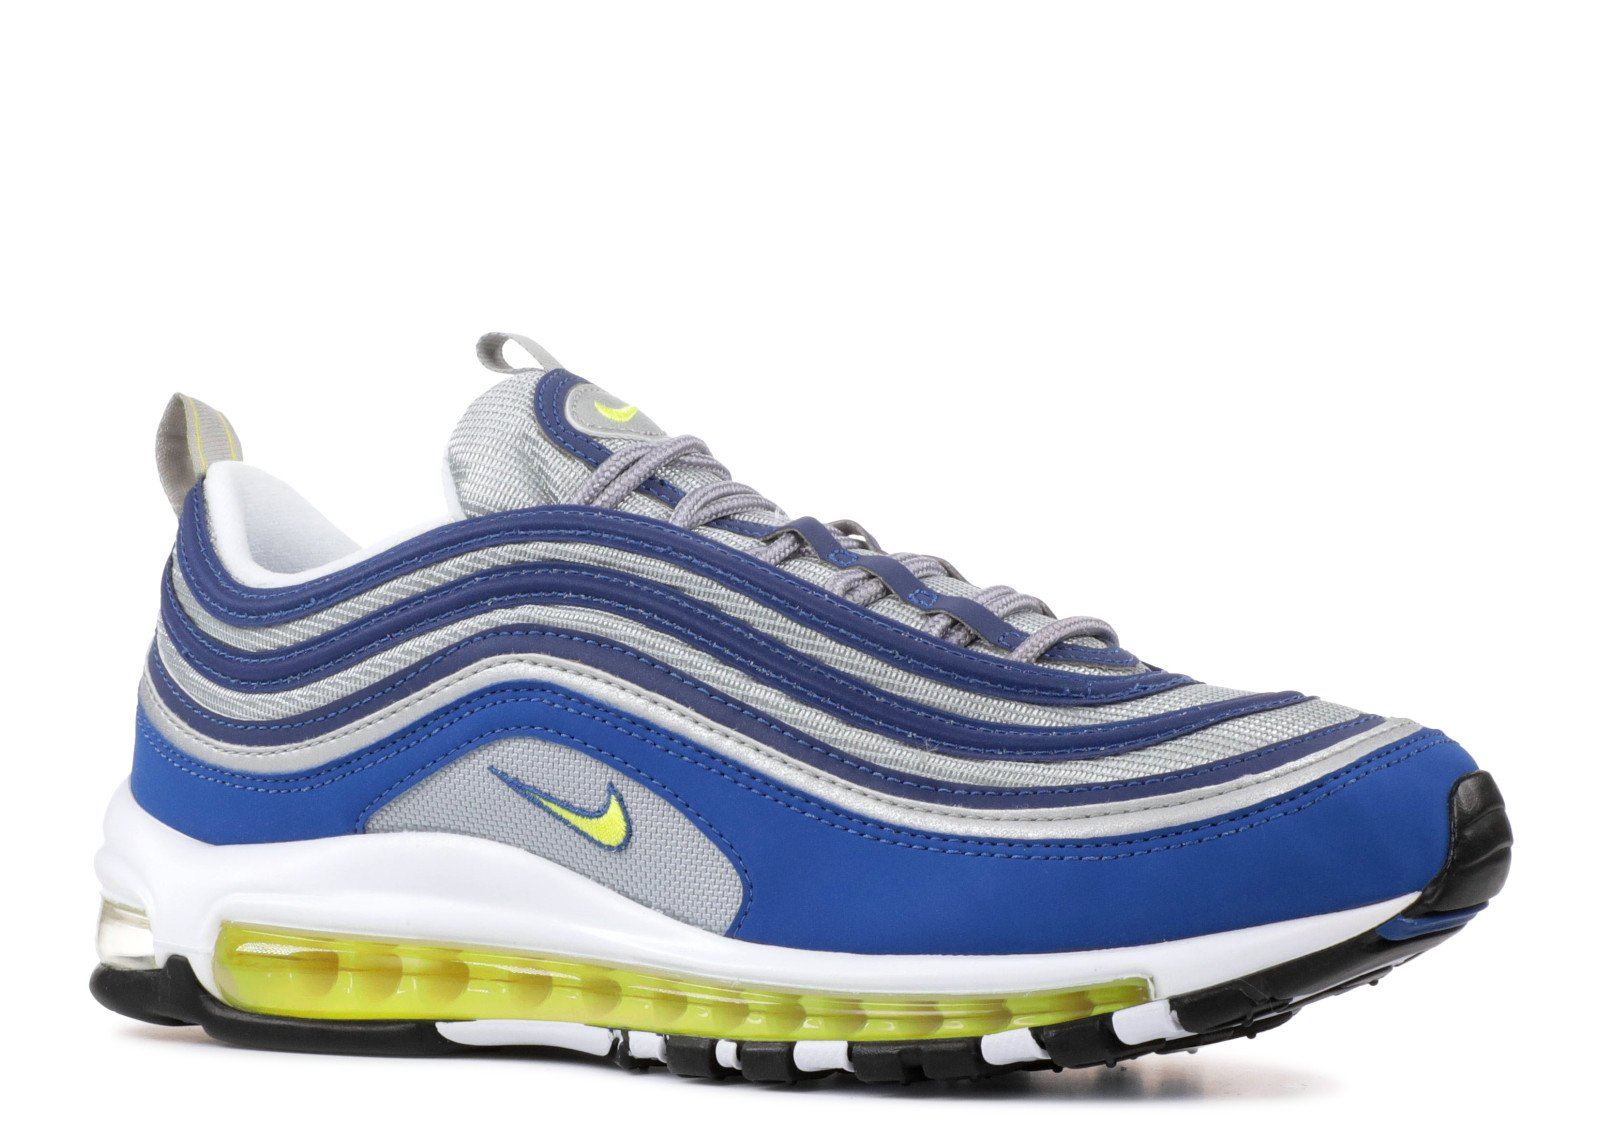 Nike Air Max 97 Og Royal Neon Style: 921826 401 Size: 11